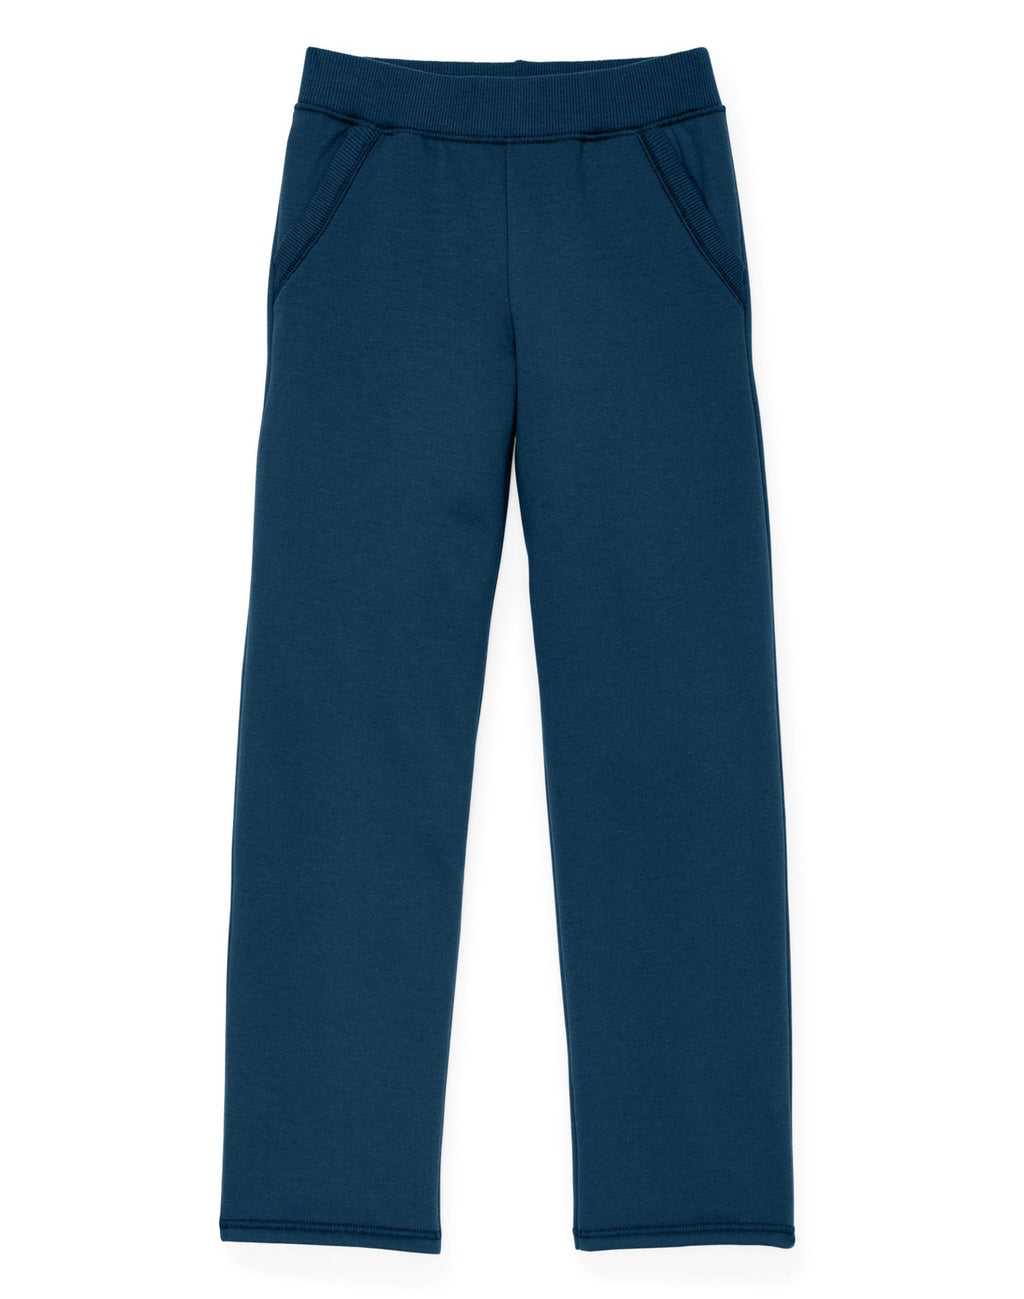 Hanes Girls Fleece Open Leg Sweatpants with Pockets